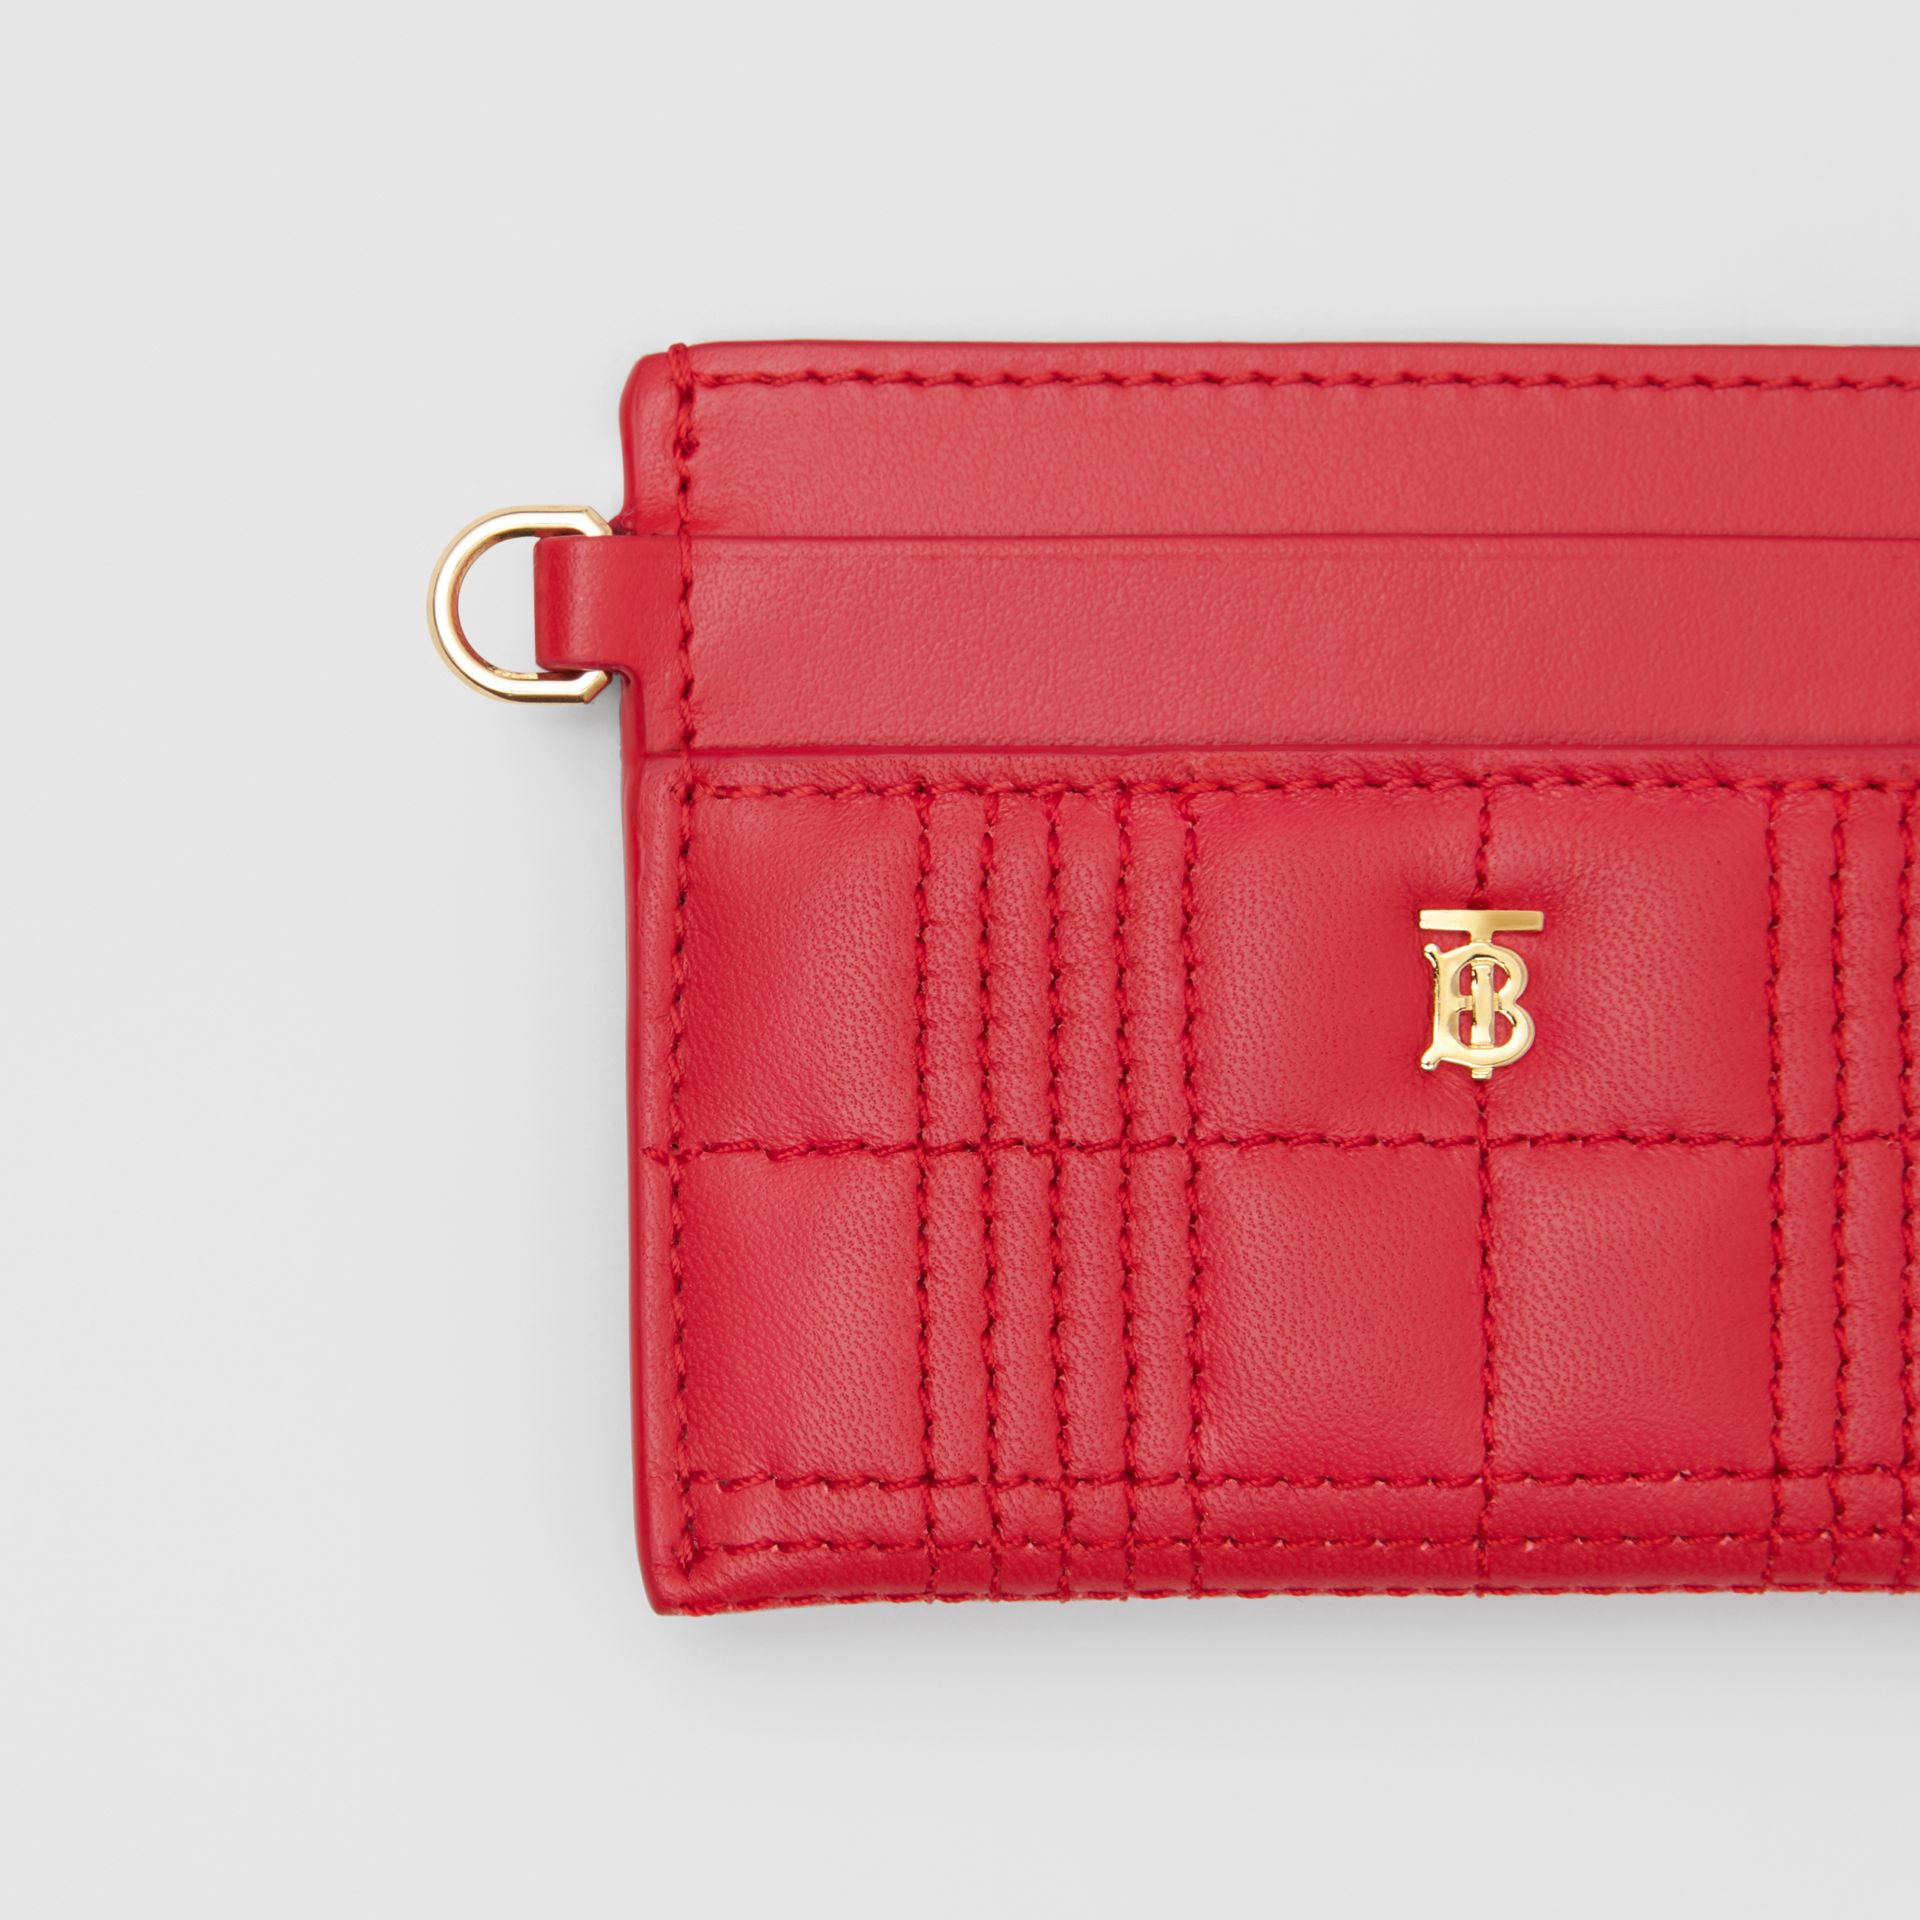 Monogram Motif Quilted Lambskin Card Case in Bright Red - Women | Burberry Hong Kong S.A.R - gallery image 1